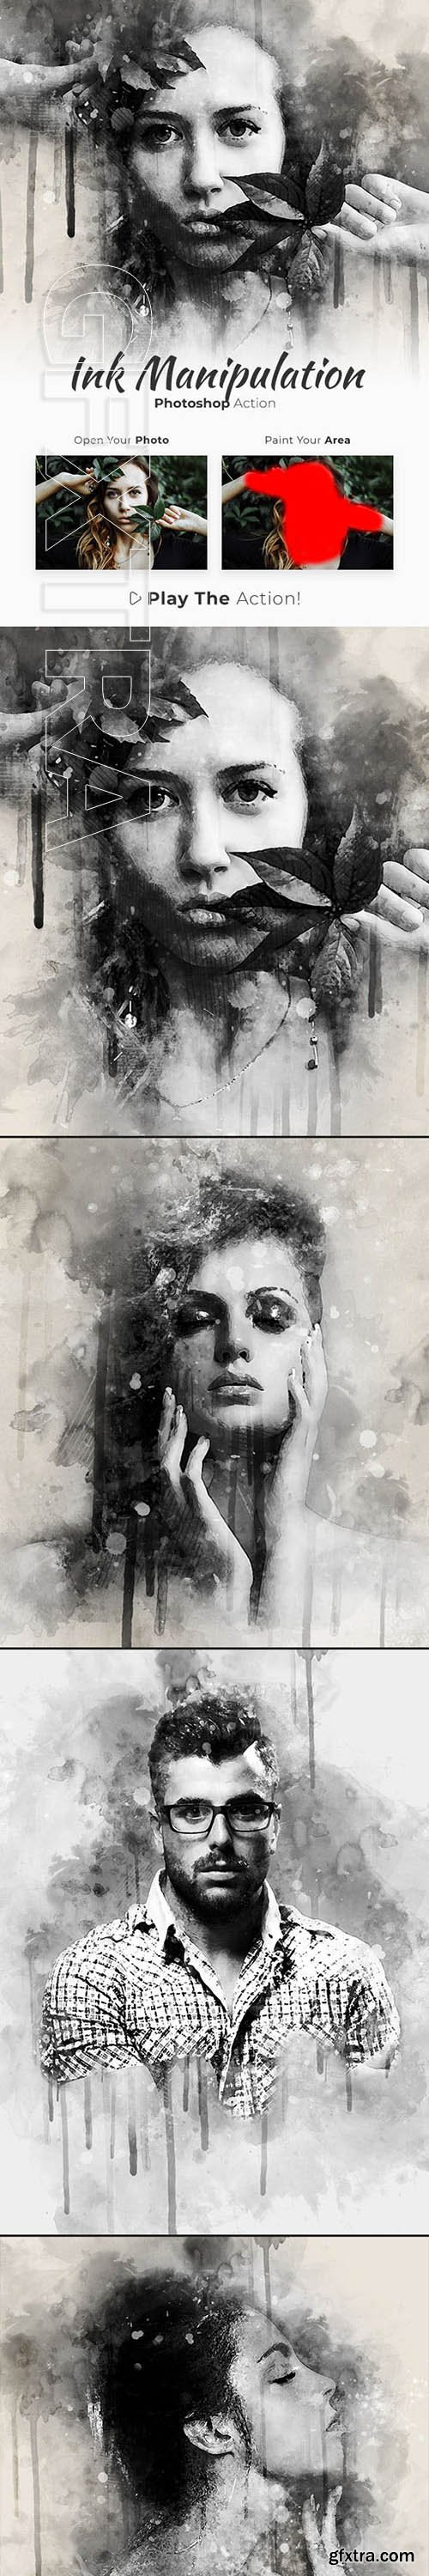 GraphicRiver - Ink Manipulation Photoshop Action 23444941